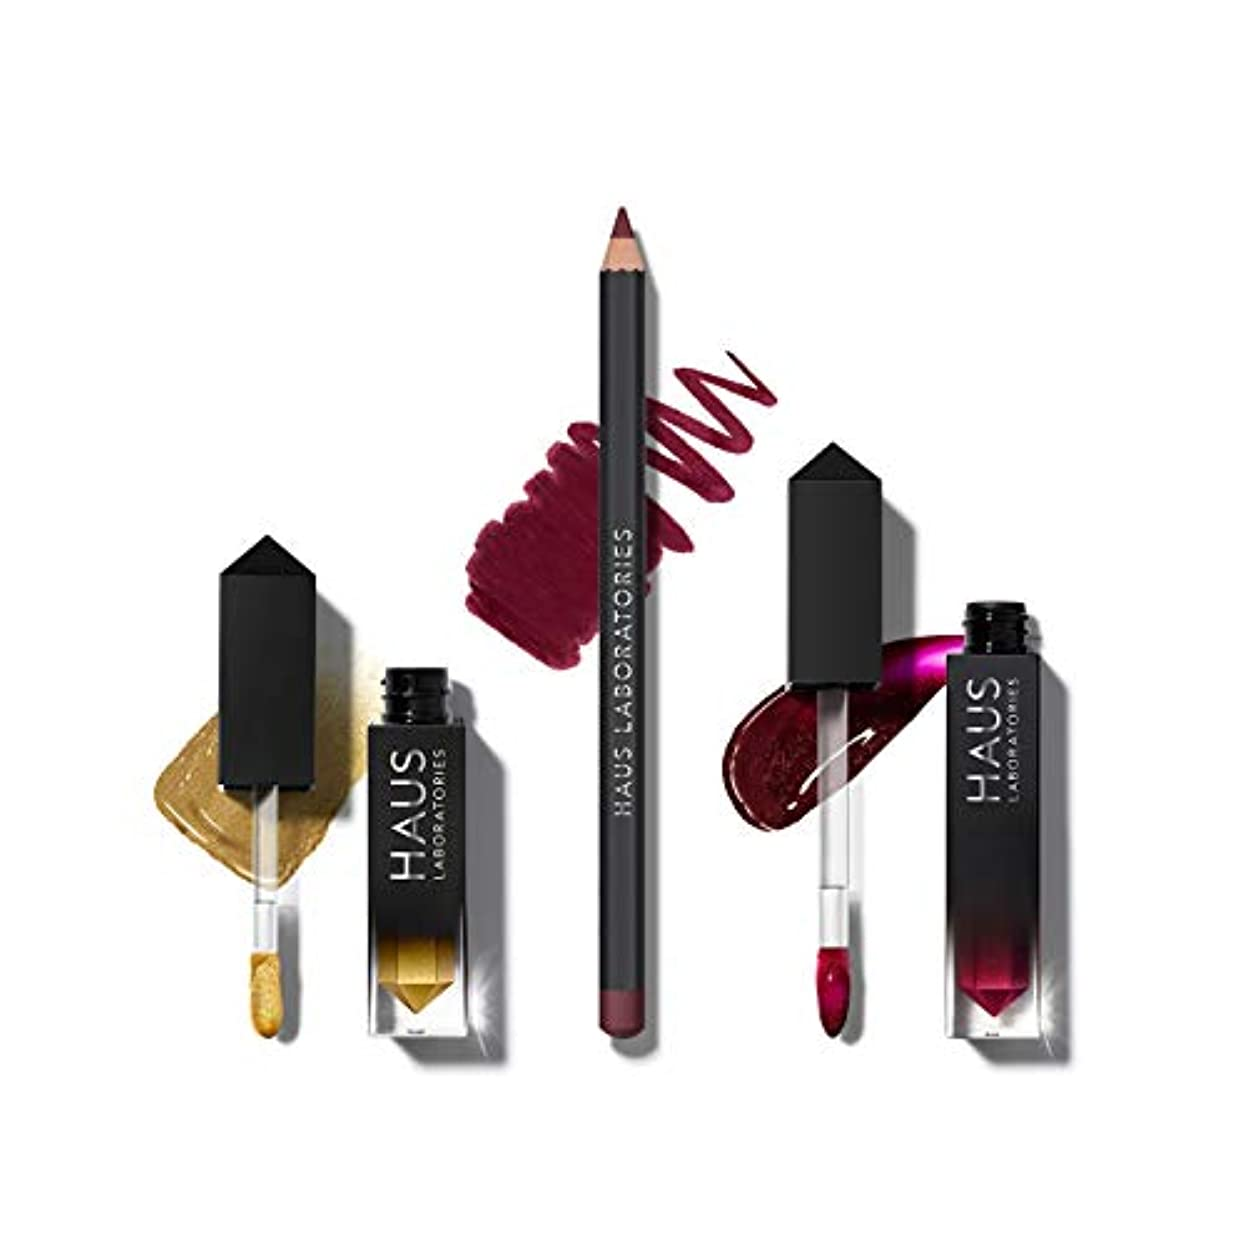 HAUS LABORATORIES HAUS of Collections 3点セット All-Over Color, Lip Gloss, Lip Liner (HAUS of Rockstar)